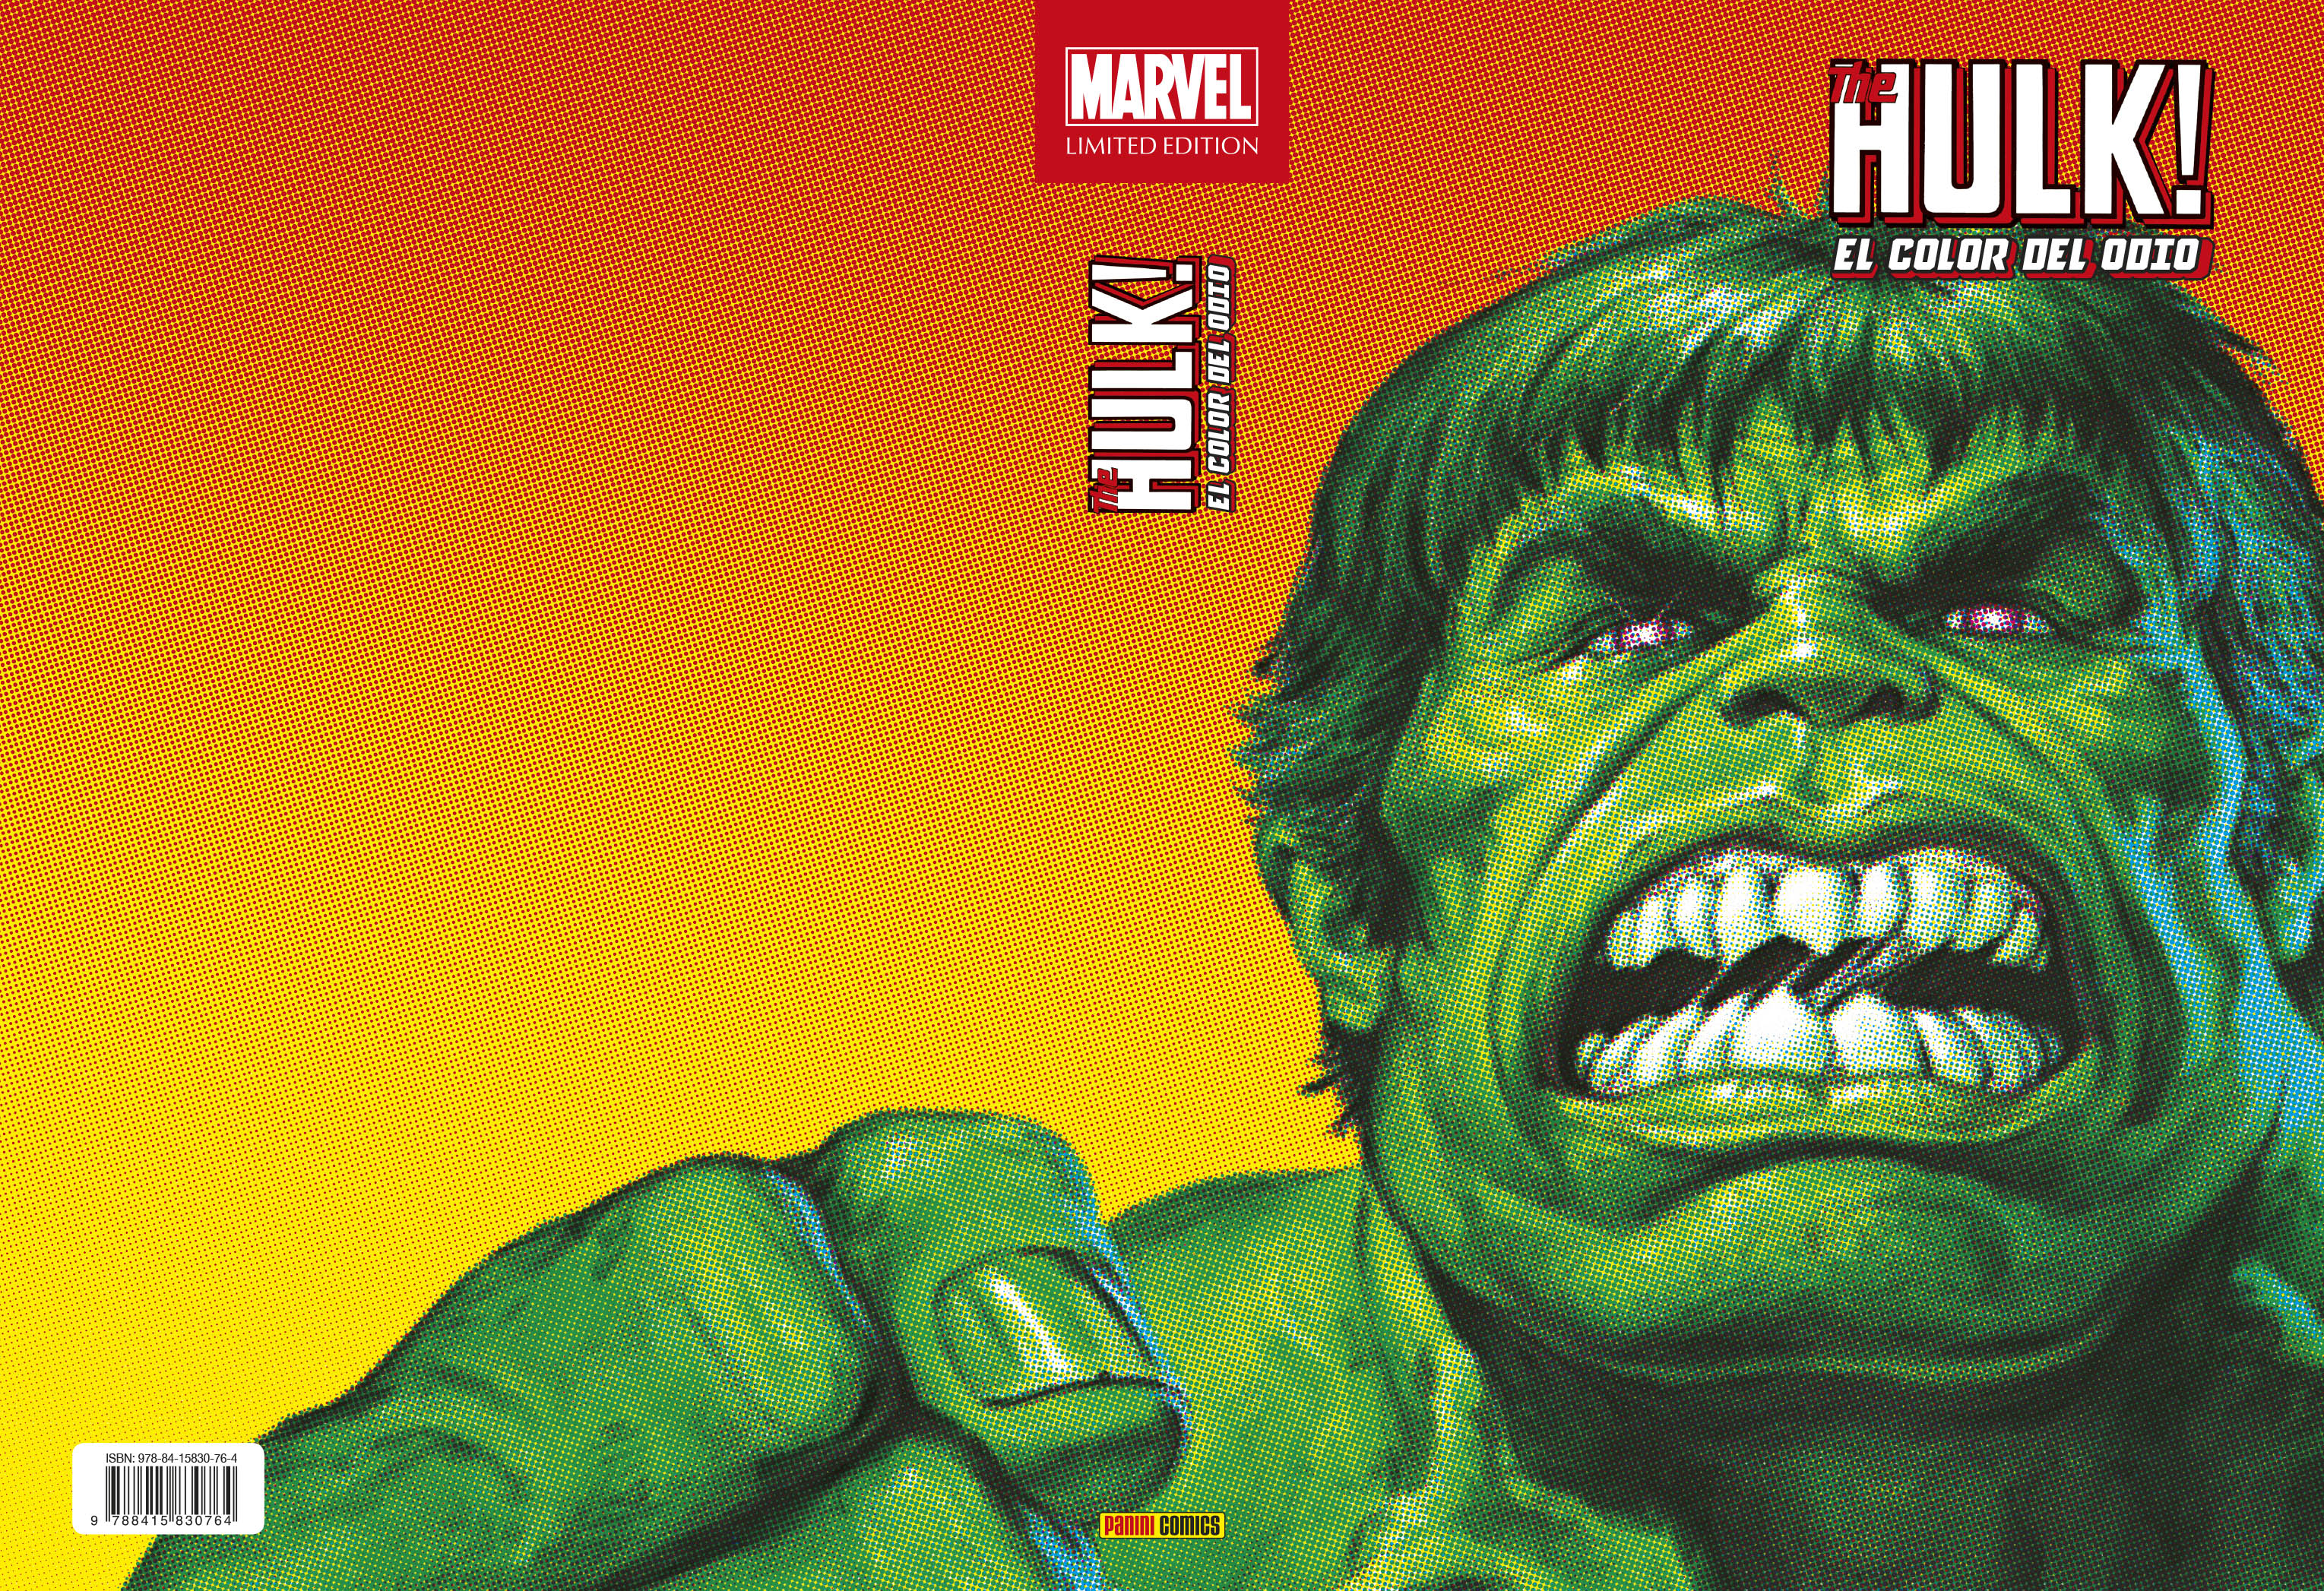 Marvel Limited Edition. The Hulk 1